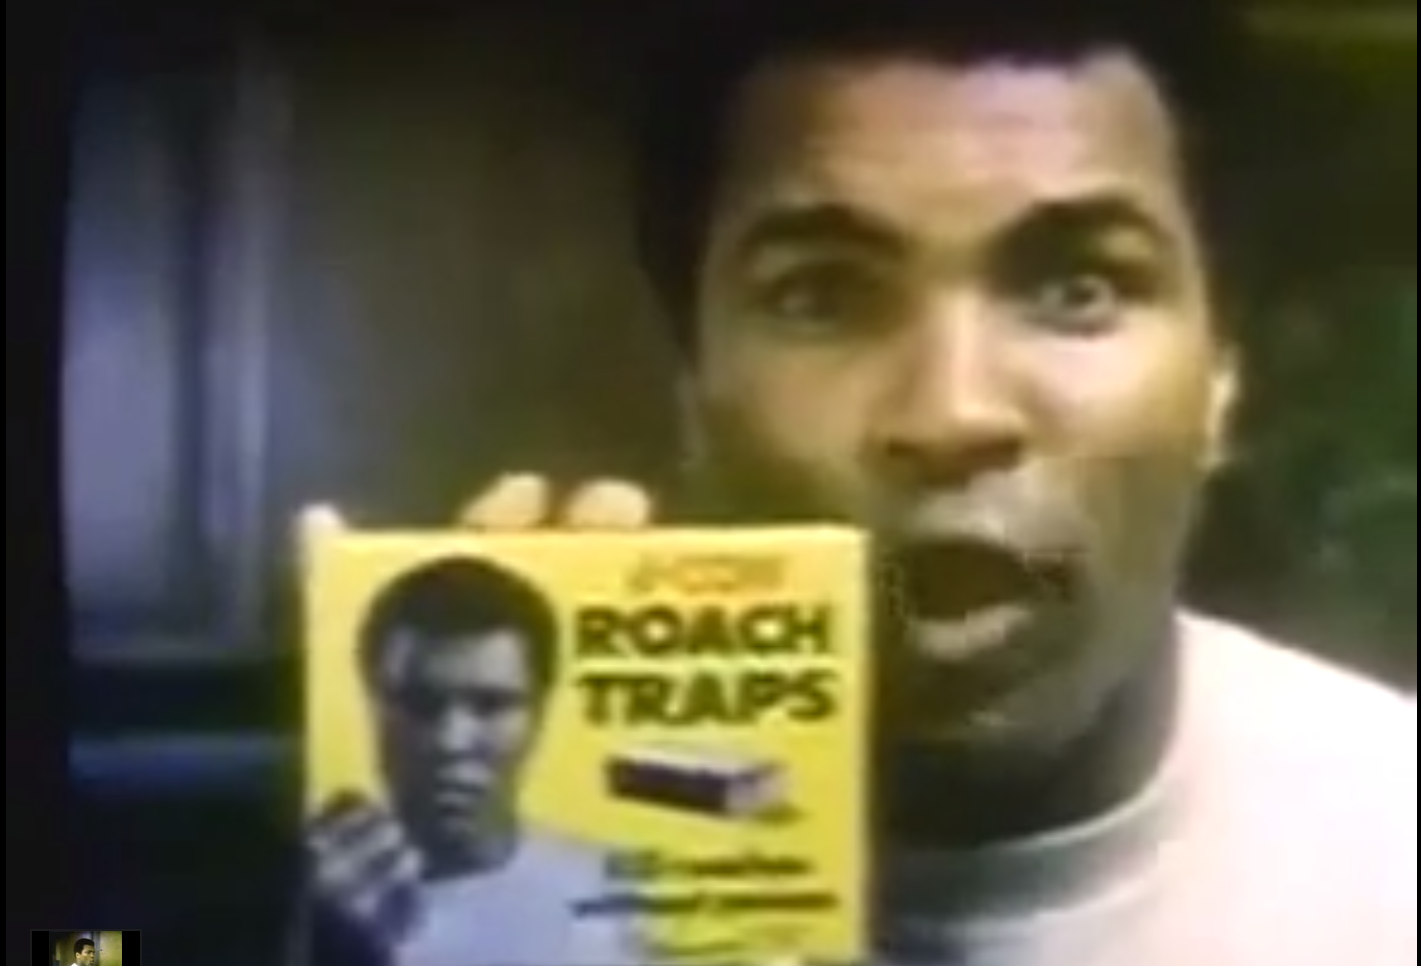 Top 10 strangest sports endorsements of all time